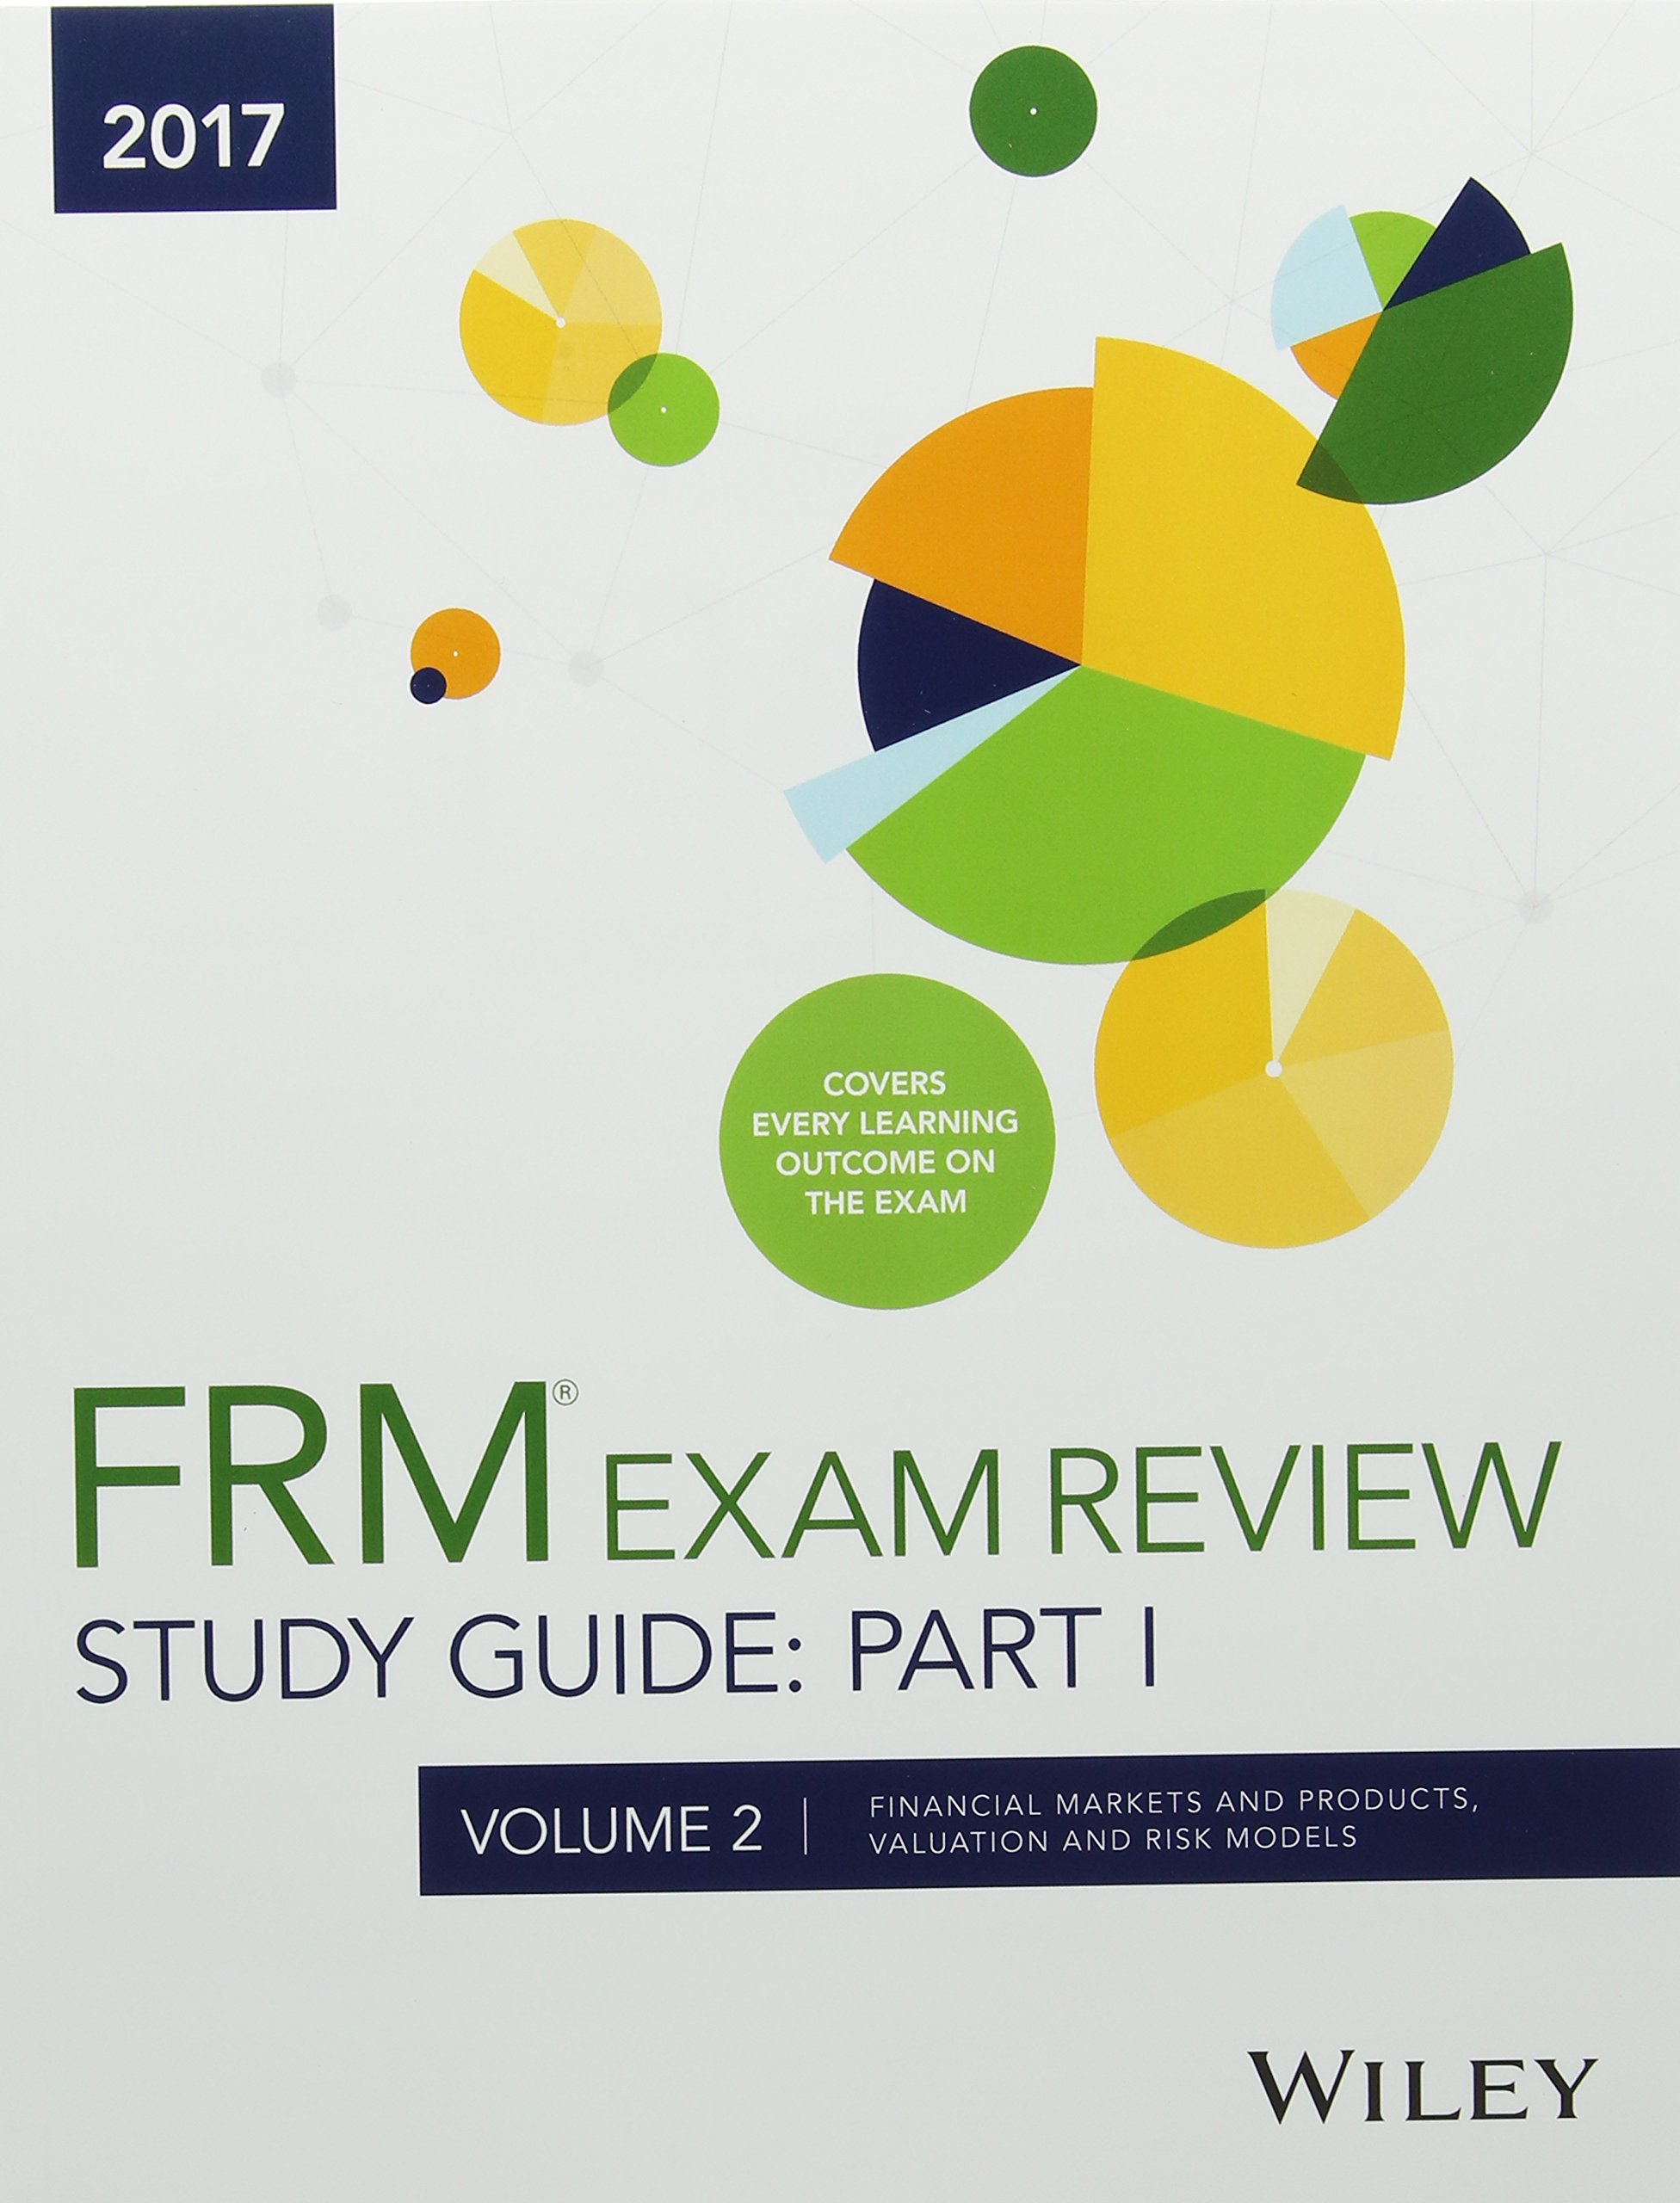 Buy Wiley Study Guide For 2017 Part I Frm Exam Complete Set Book